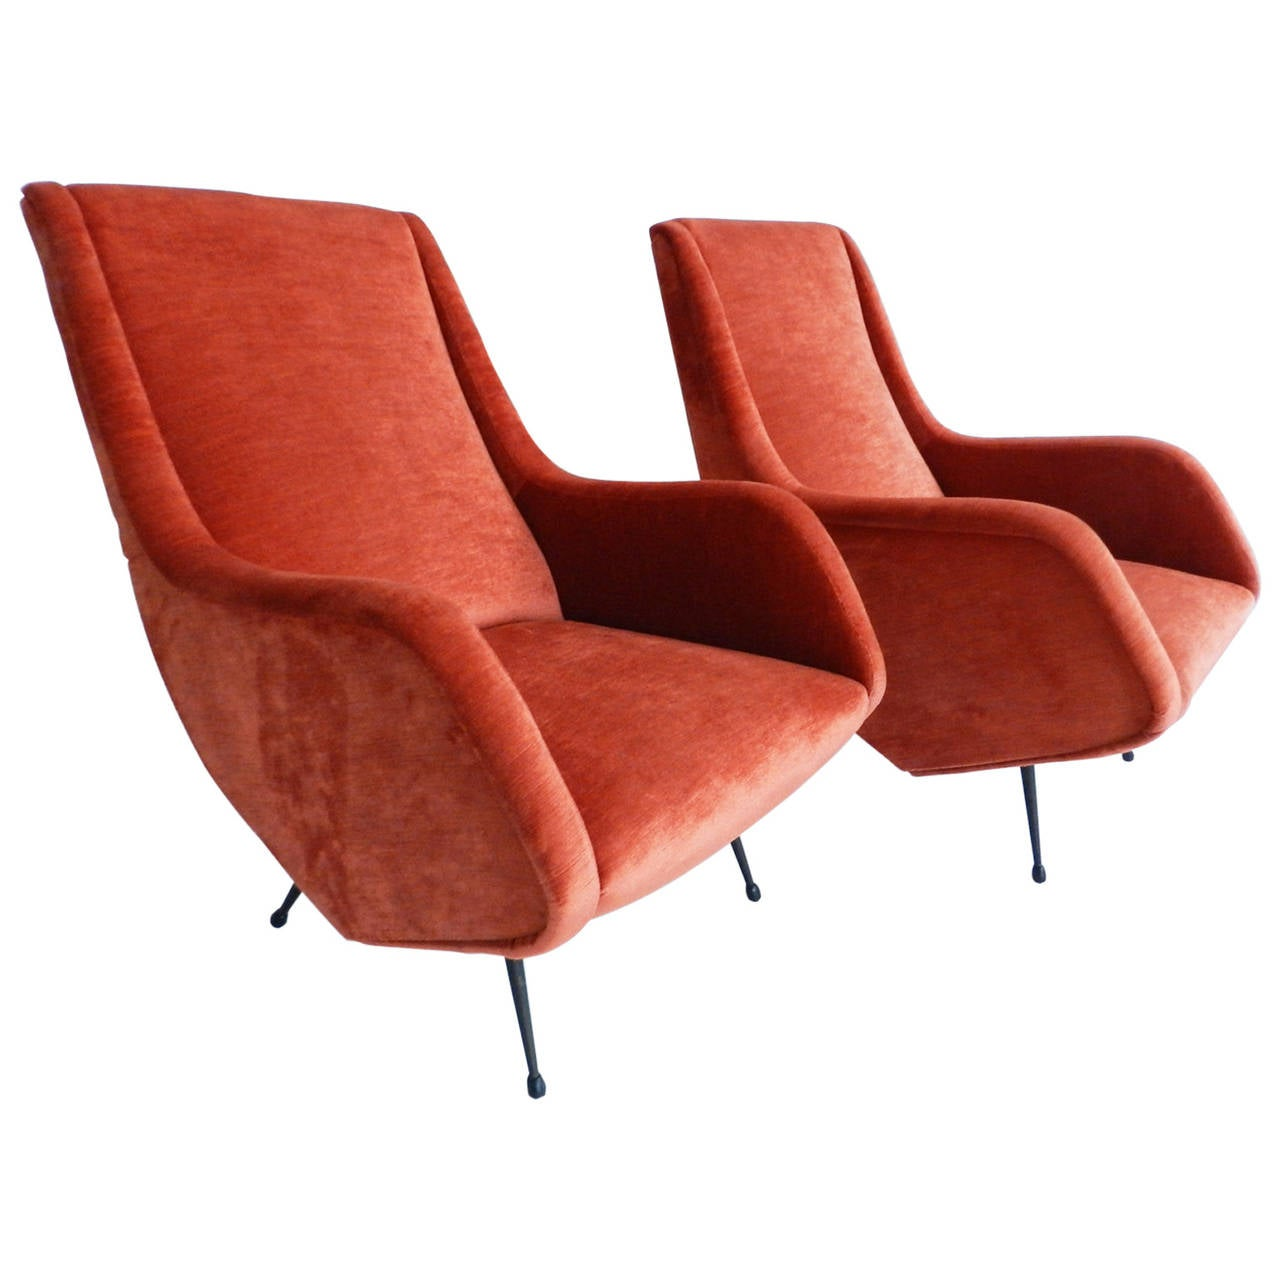 Two armchairs designed by aldo morbelli edited by isa for Isa arredamenti